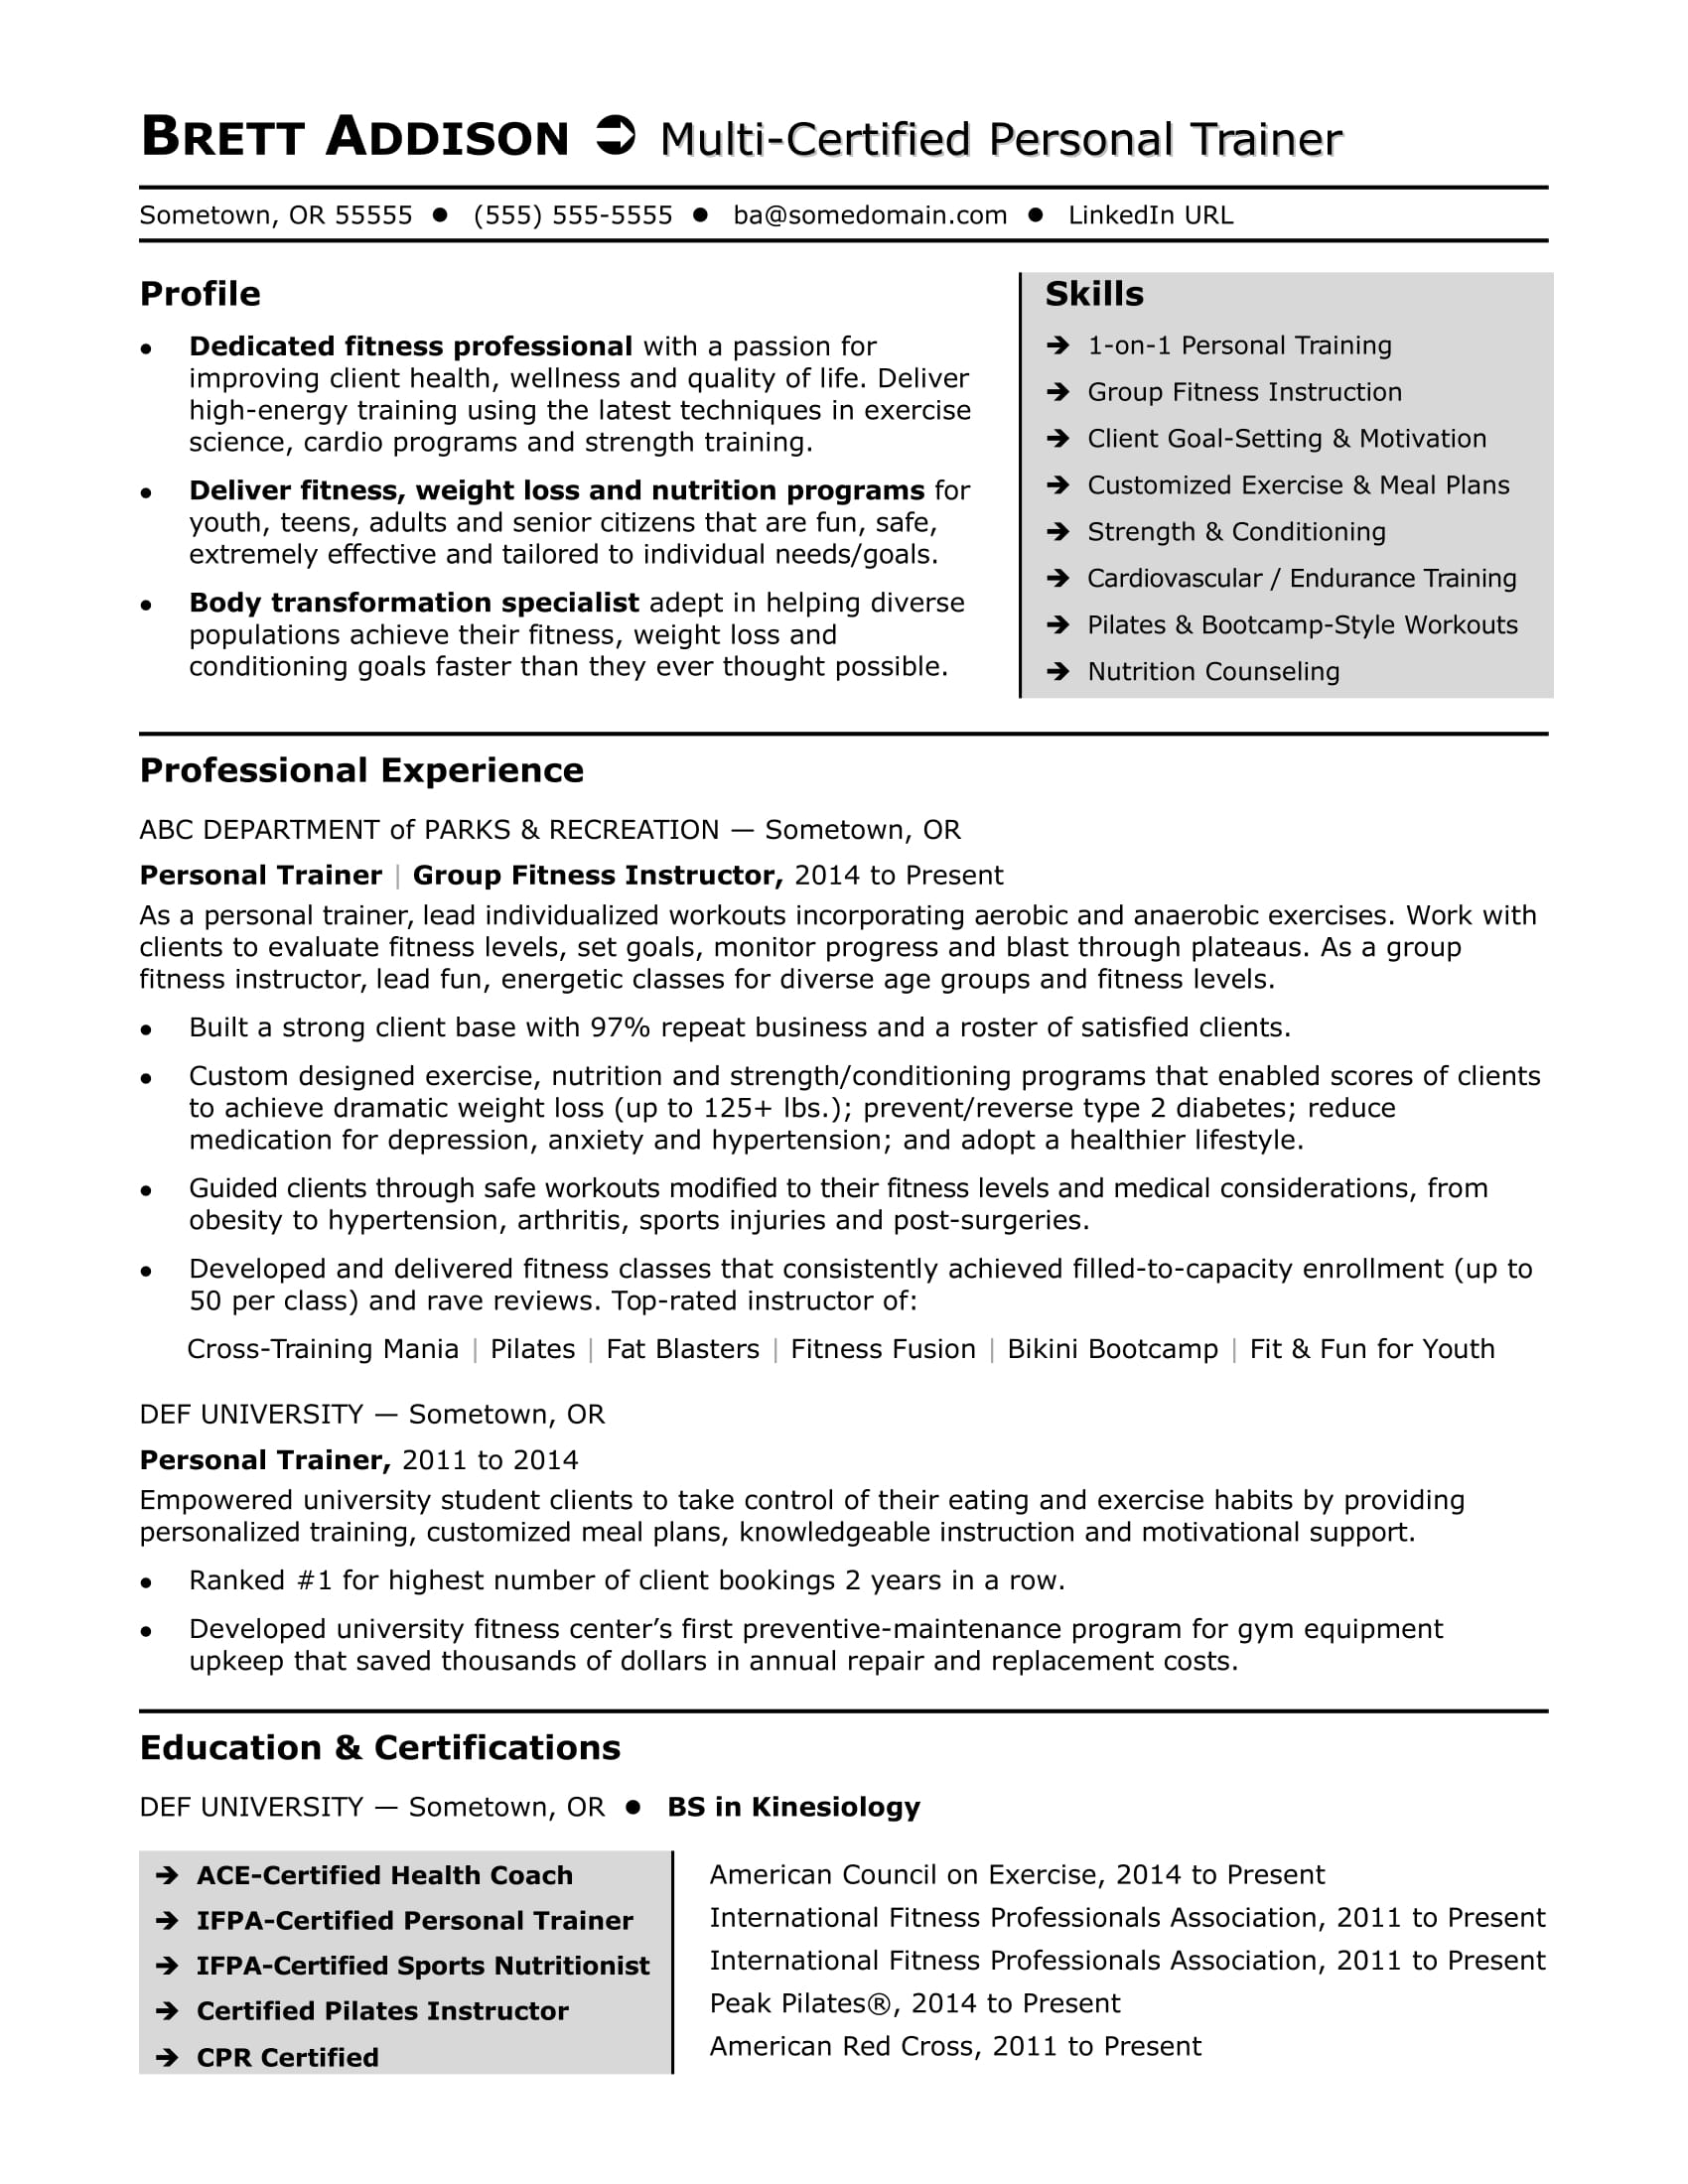 personal trainer resume sample monster for position child care provider free photoshop Resume Resume For Trainer Position